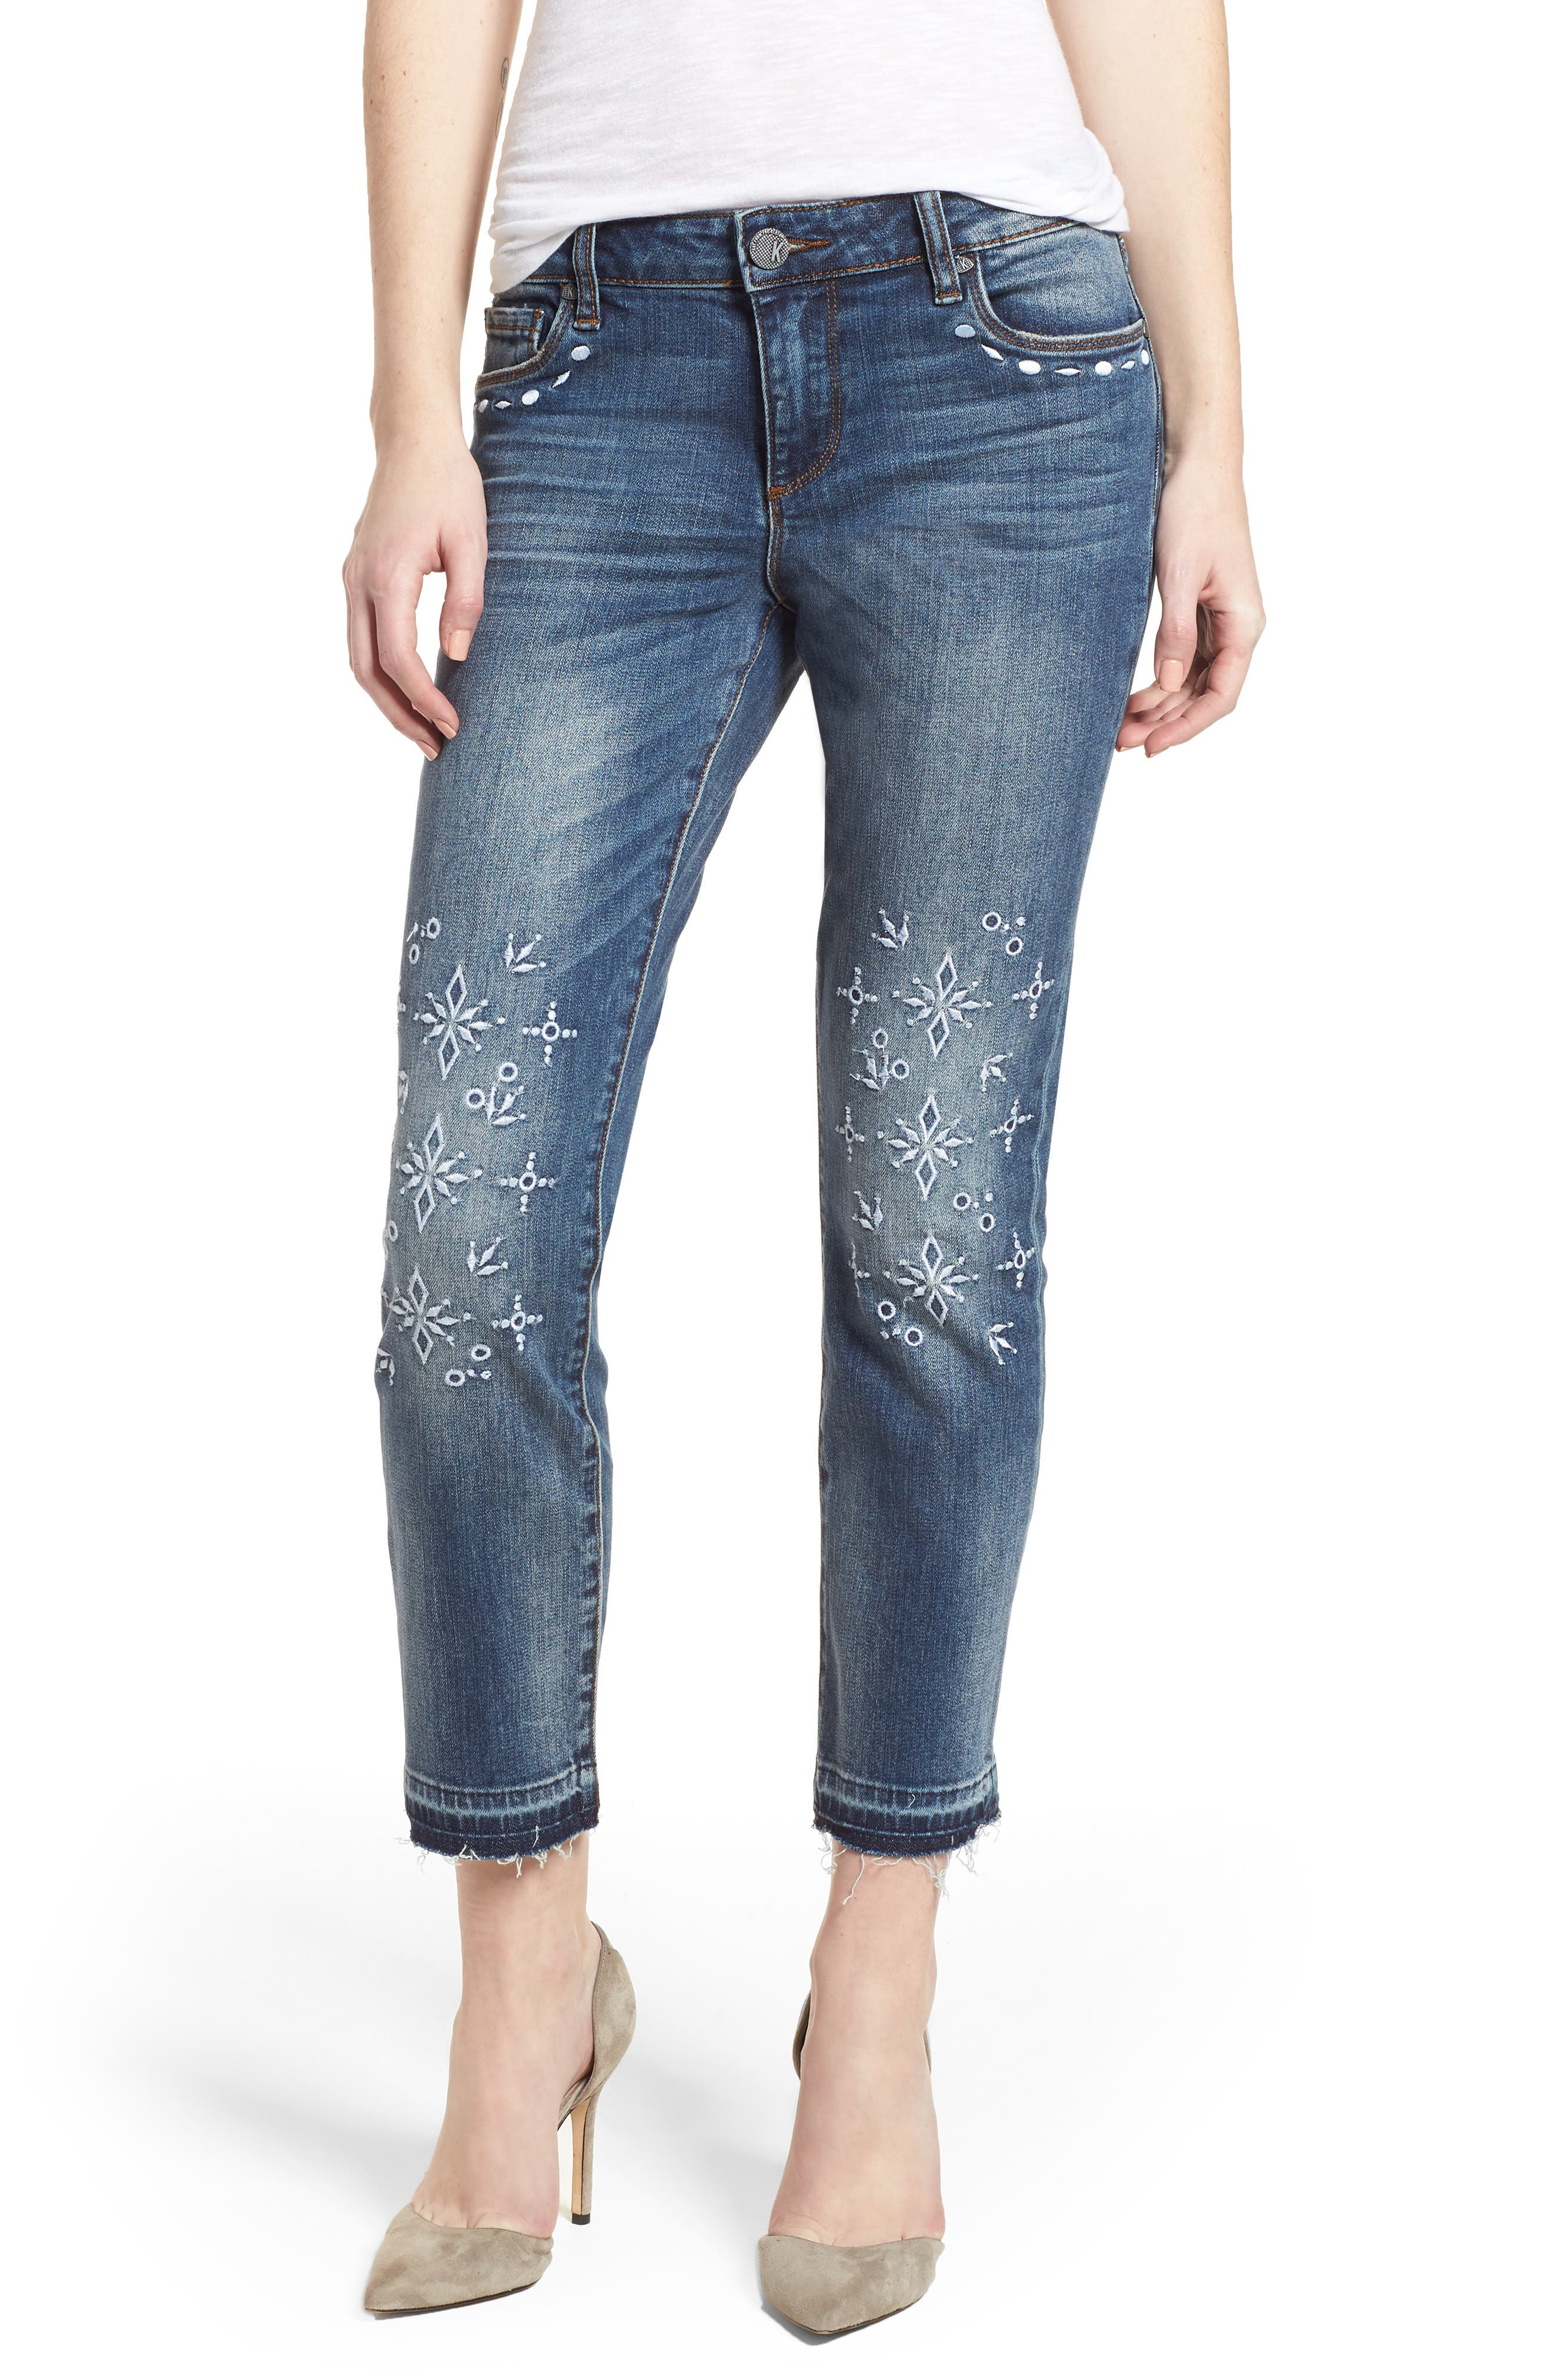 Reese Release Hem Embroidered Jeans,                             Main thumbnail 1, color,                             400